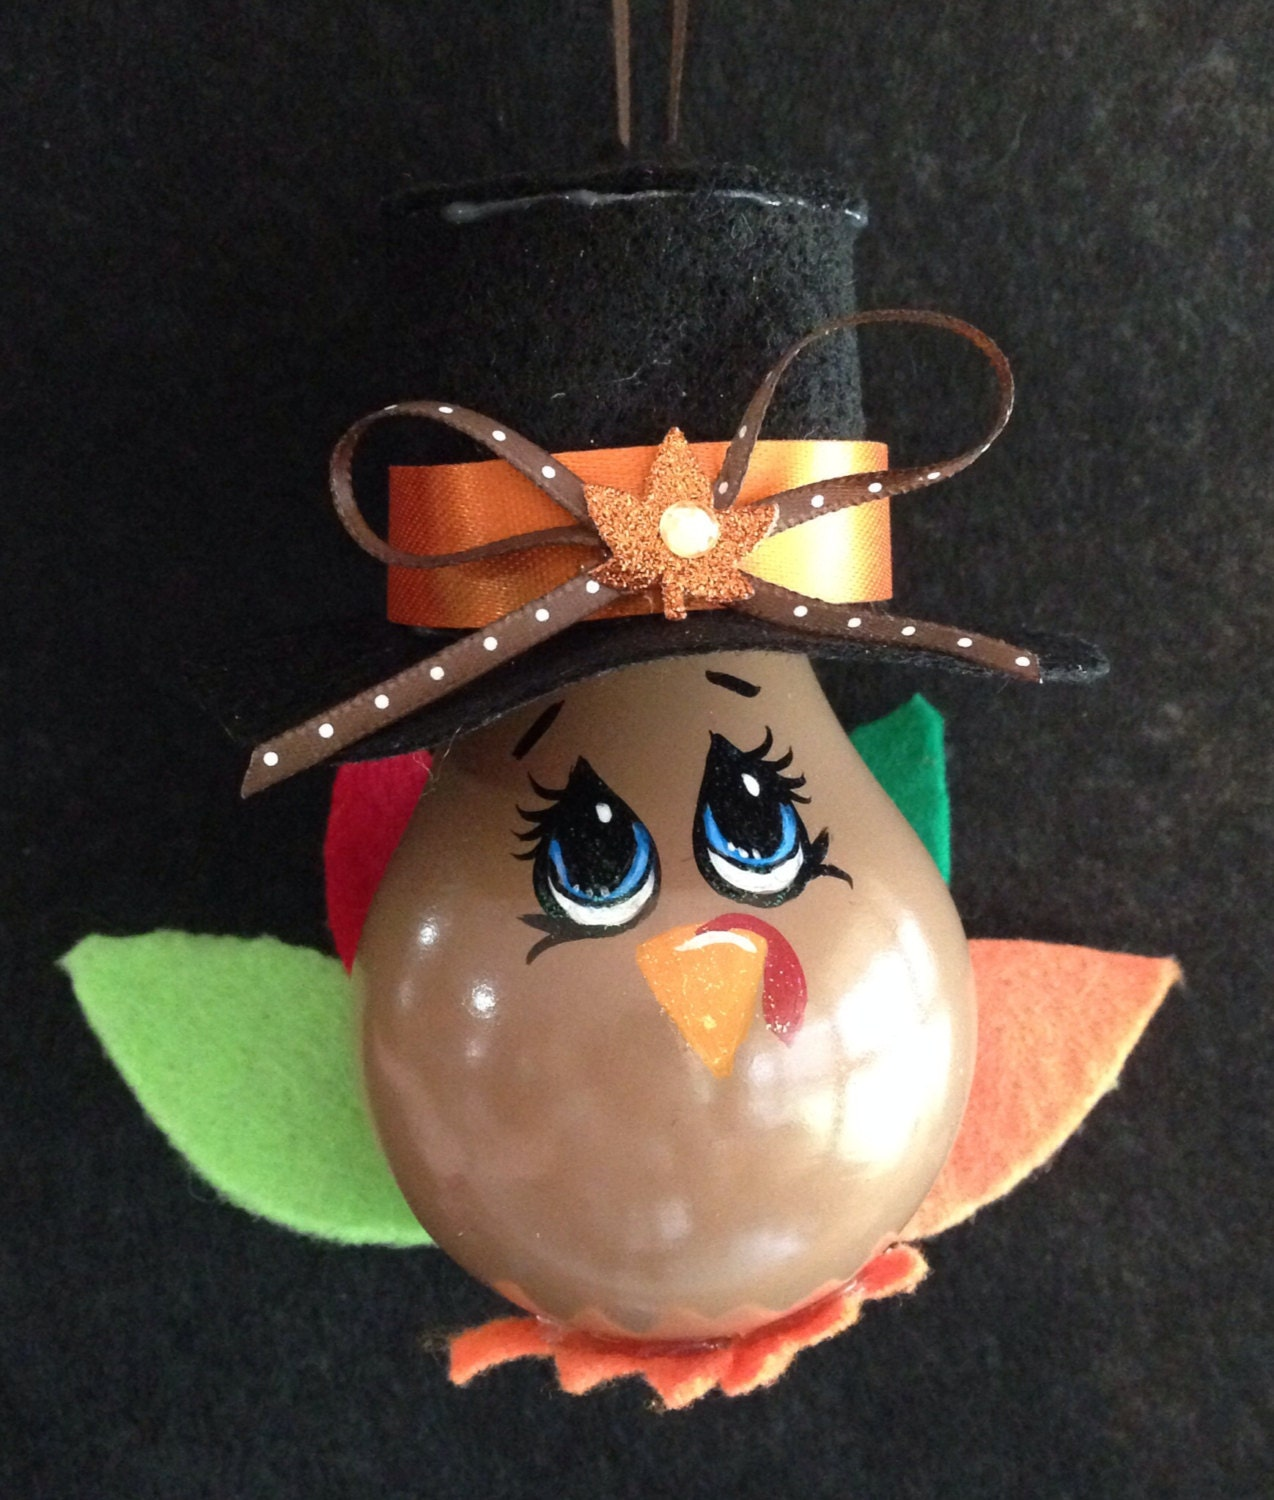 Christmas Light Bulb Decorations: Thanksgiving Painted Light Bulb Ornament Turkey Decoration